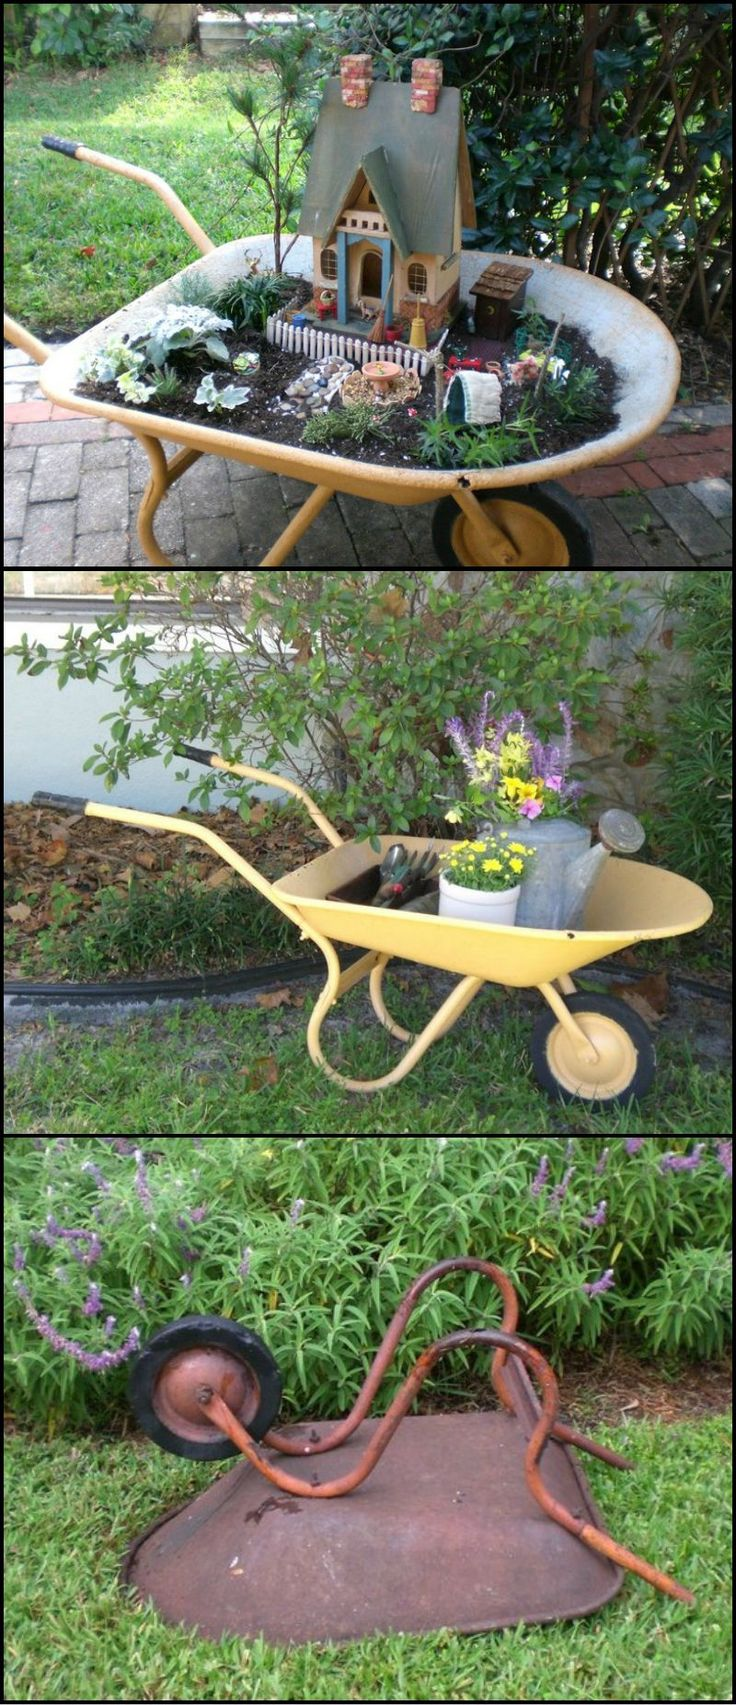 How To Make A Fairy Garden From An Old Wheelbarrow  http://theownerbuildernetwork.co/o49u  Got an old wheelbarrow? Why not turn into a fairy garden? A great addition to your yard!